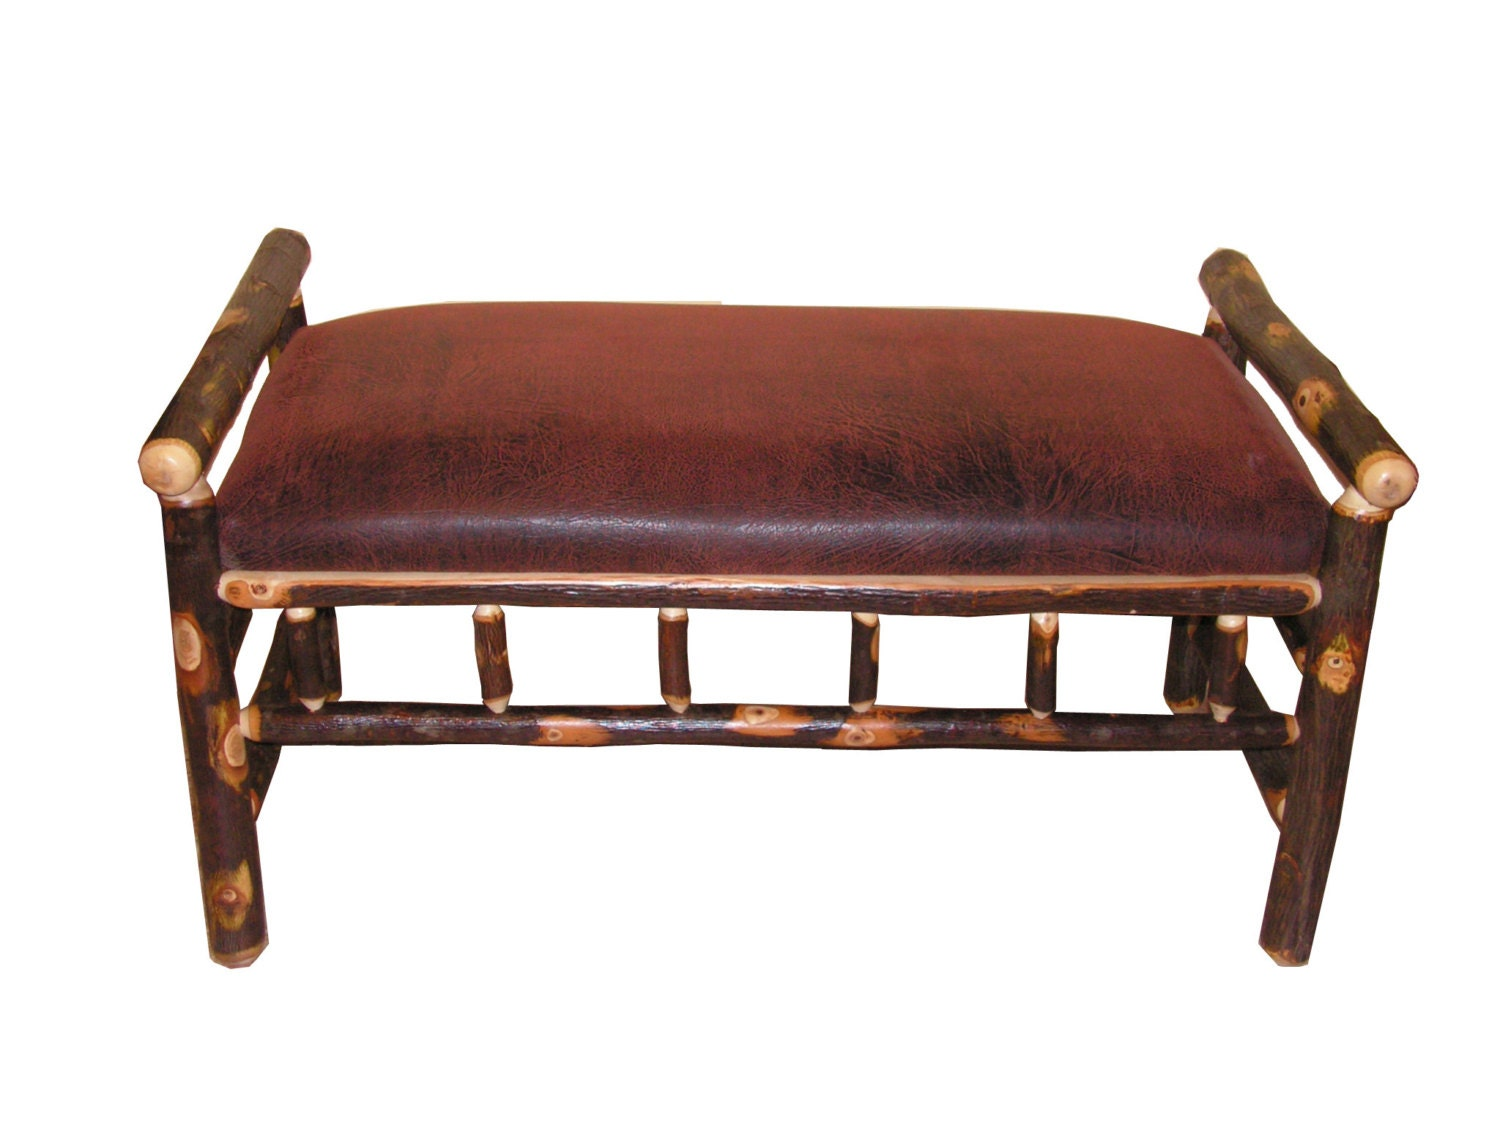 Rustic Hickory Bench Upholstered With Faux Leather Fabric